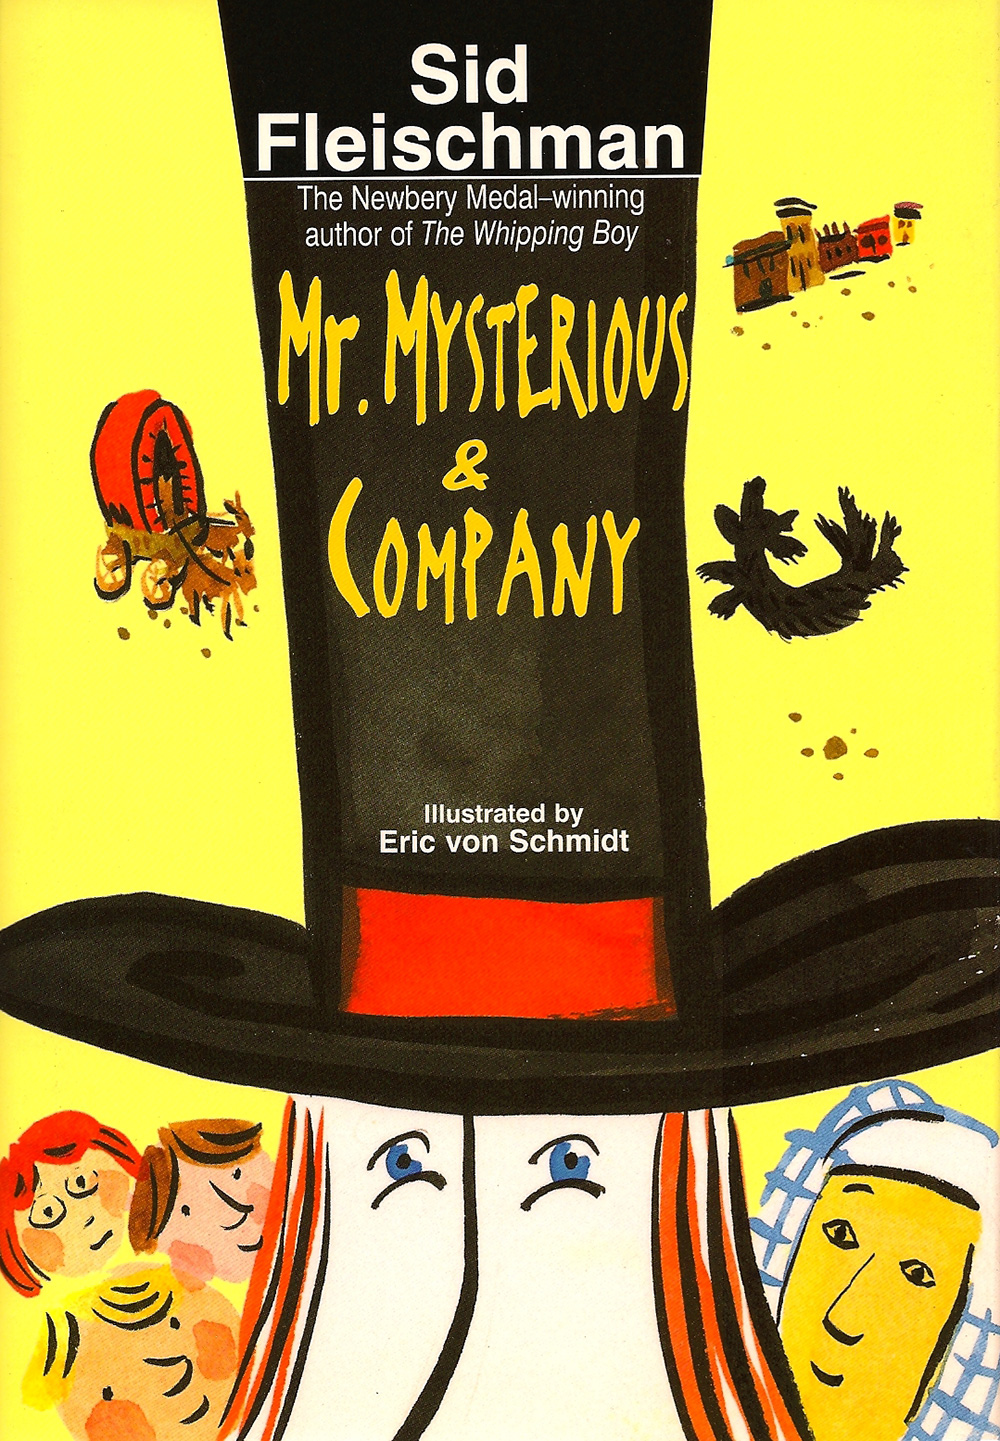 Mr. Mysterious & Company - illustrated by Eric von Schmidt The comic adventures of a magician and his family giving shows from a covered wagon in the Old West.